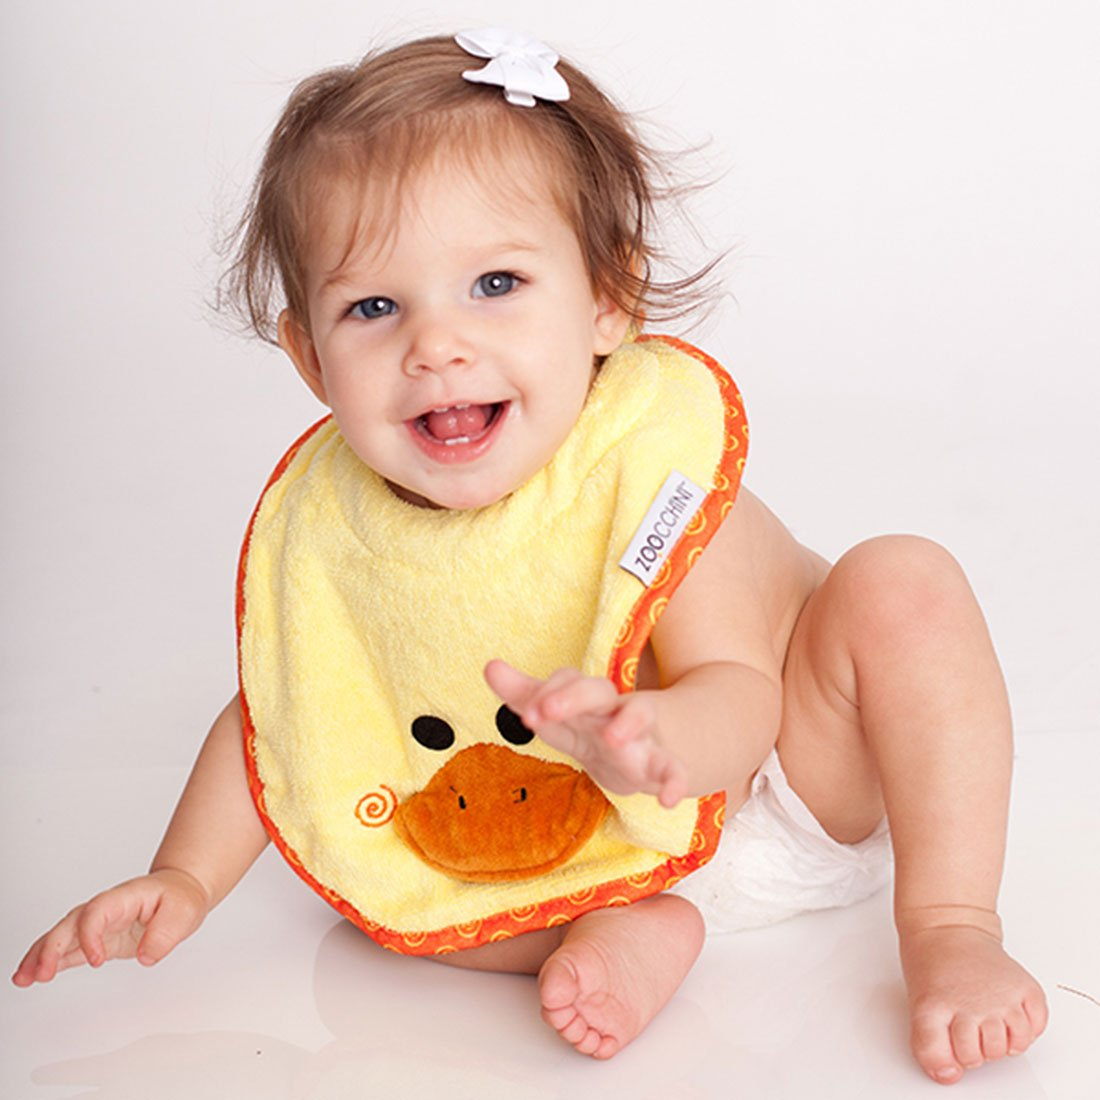 ZOOCCHINI Baby Snow Terry Feeding Bib - Puddles the Duck